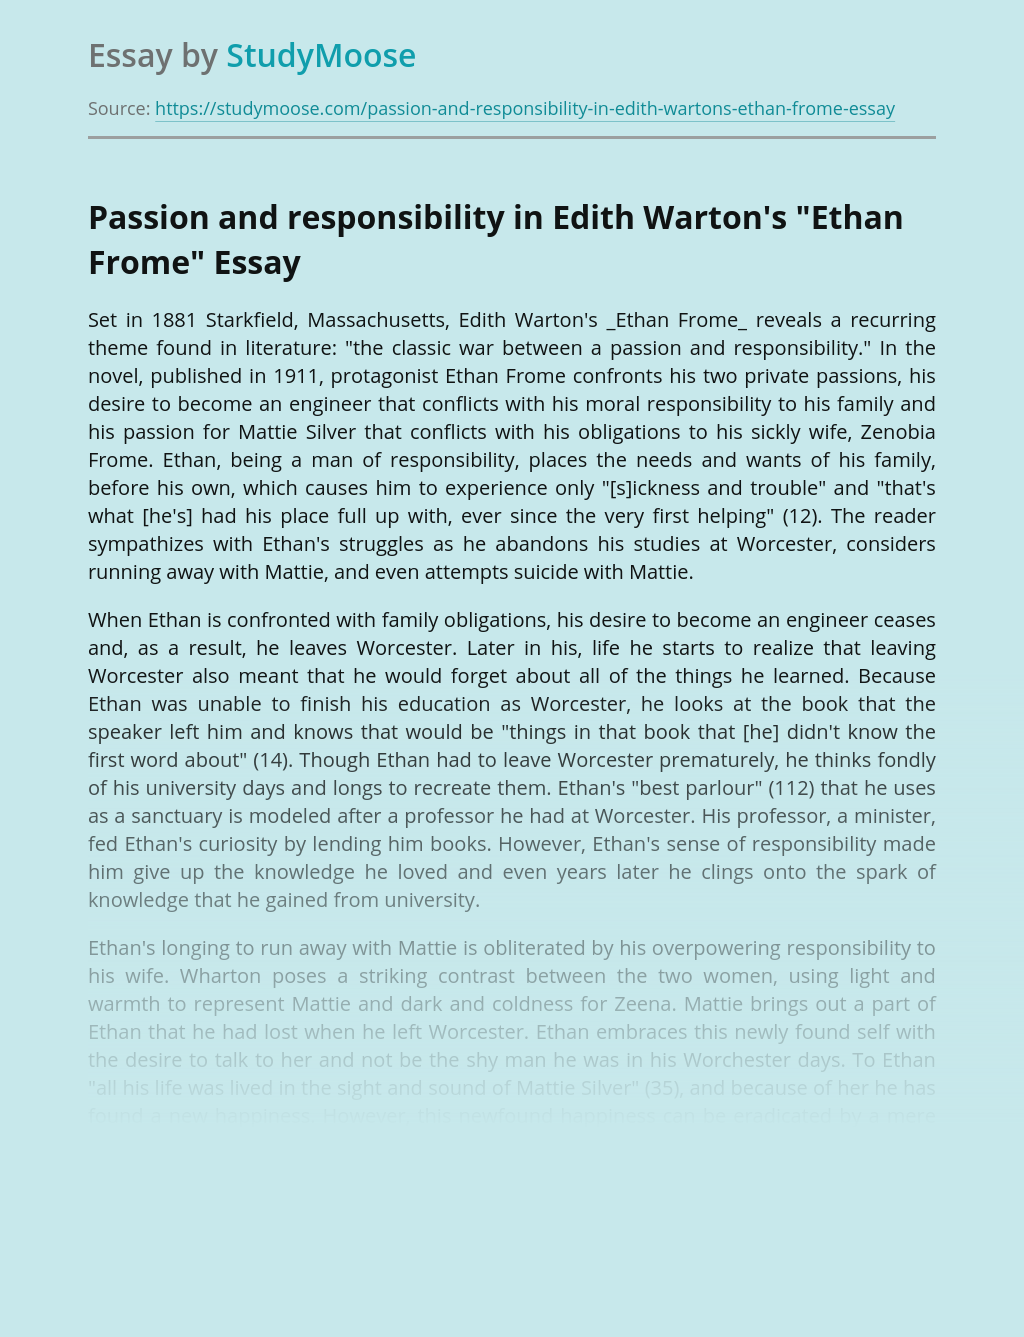 Passion and responsibility in Edith Warton's